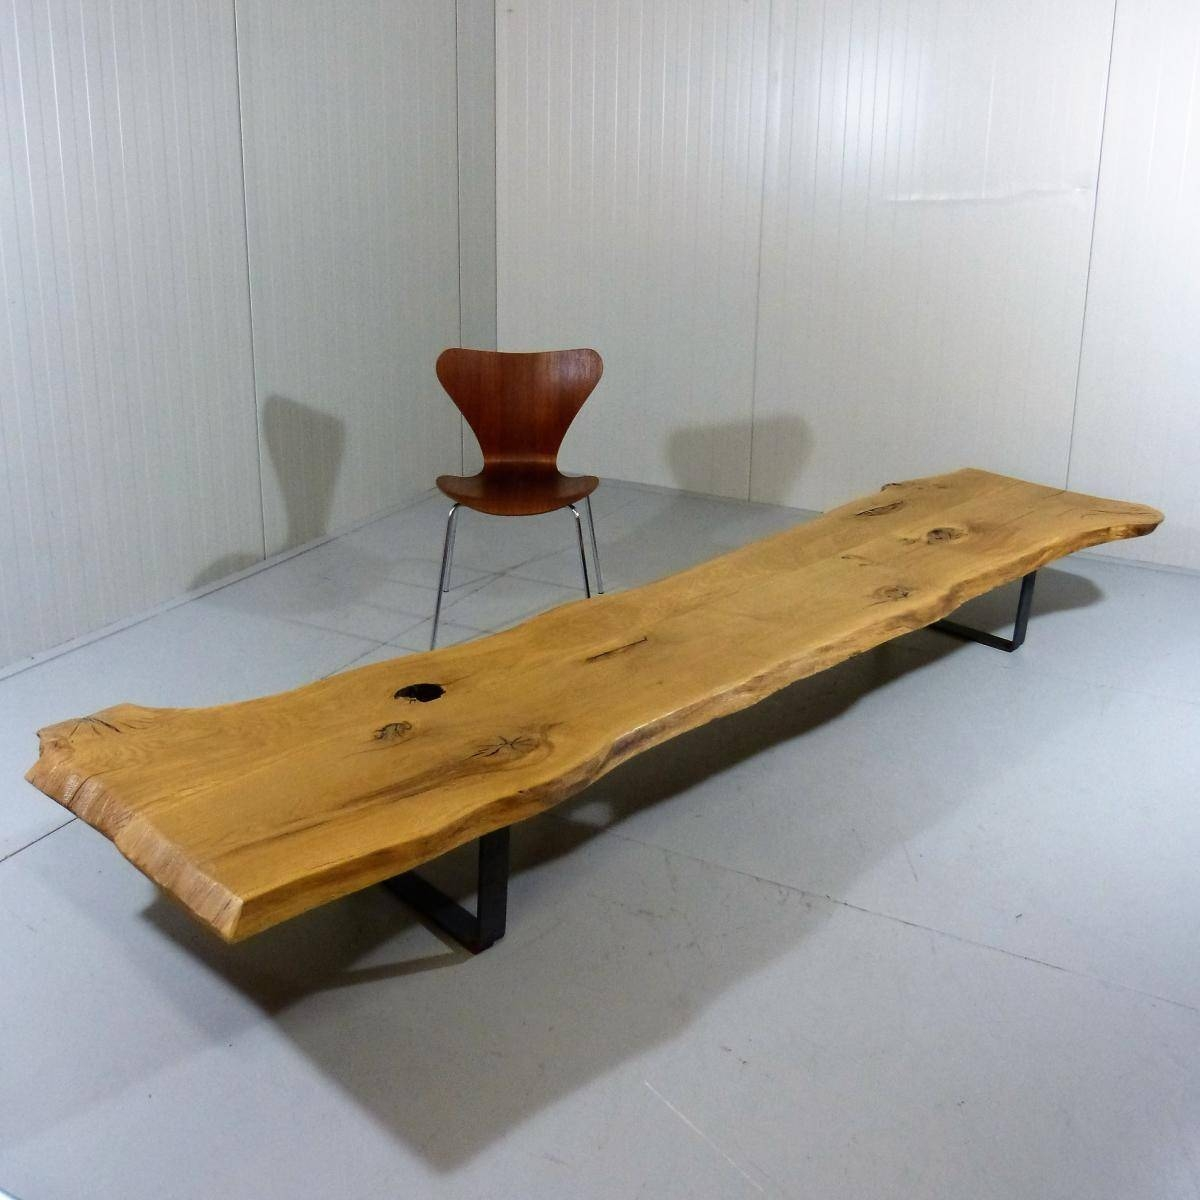 Large Tree Trunk Coffee Table For Sale At Pamono with regard to Tree Trunk Coffee Table (Image 10 of 15)